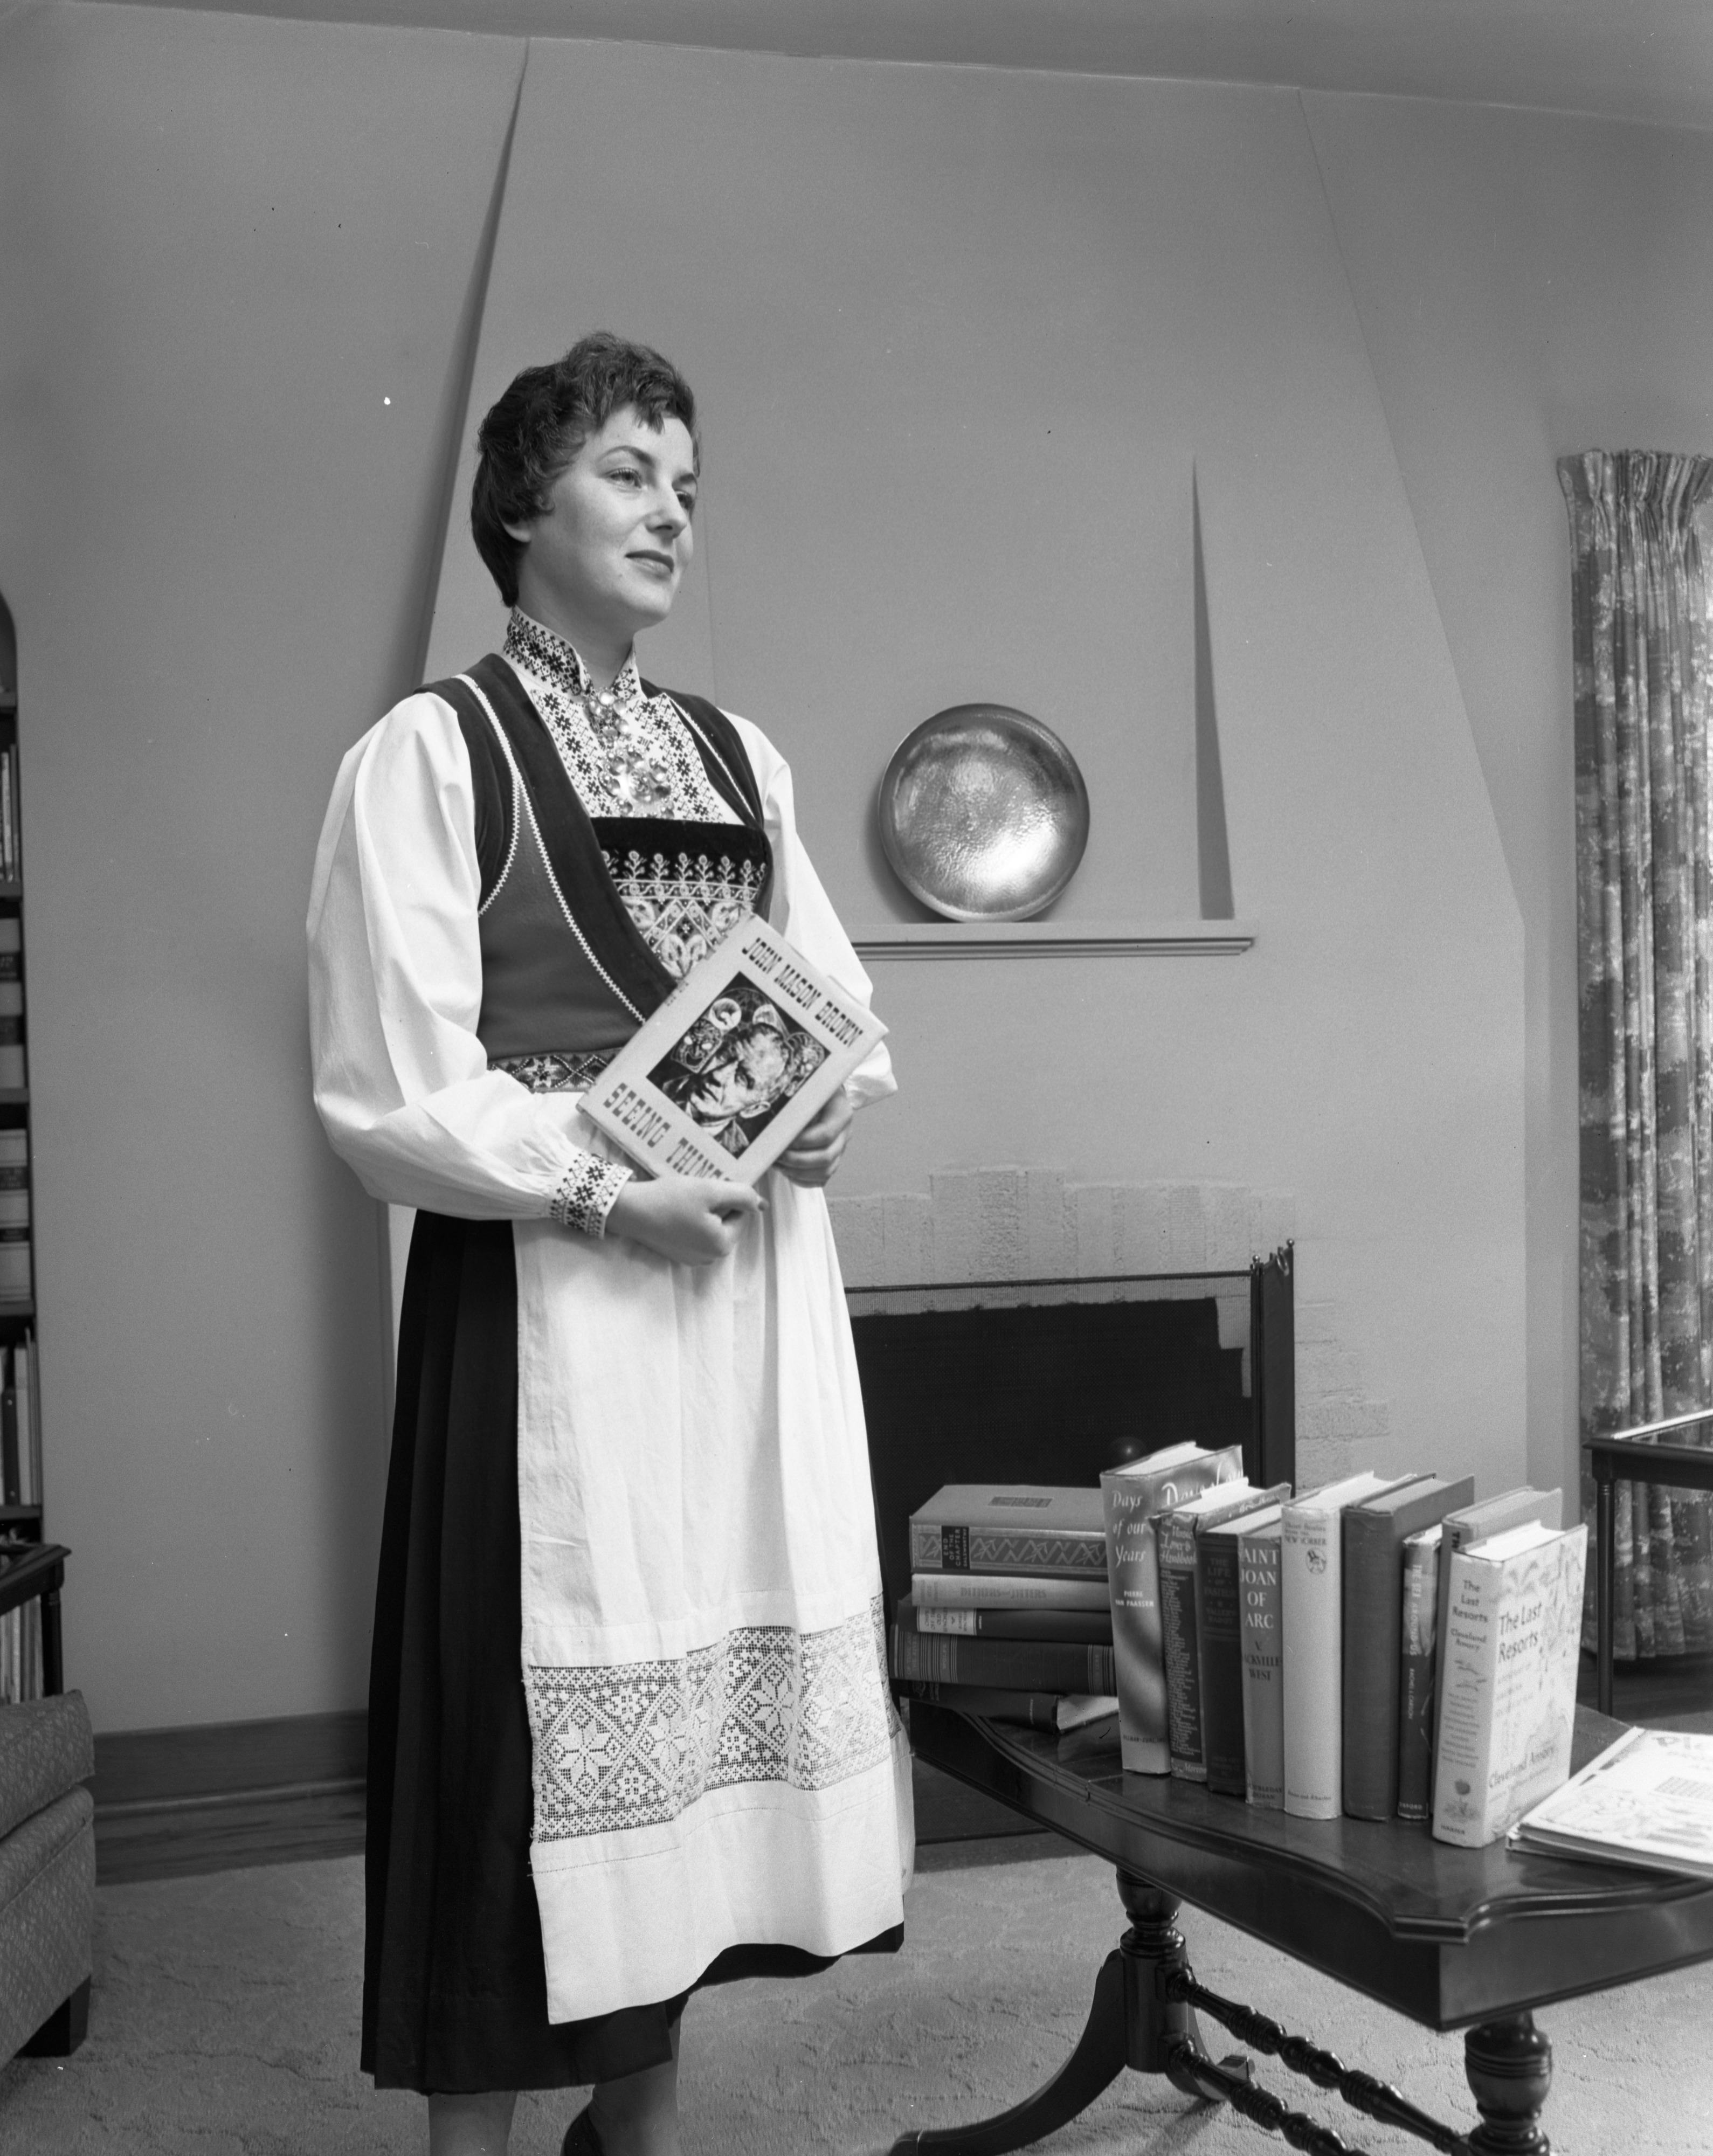 Borghild Holter With Books For Sale To Help Fund AAUW Fellowships, November 1, 1955 image